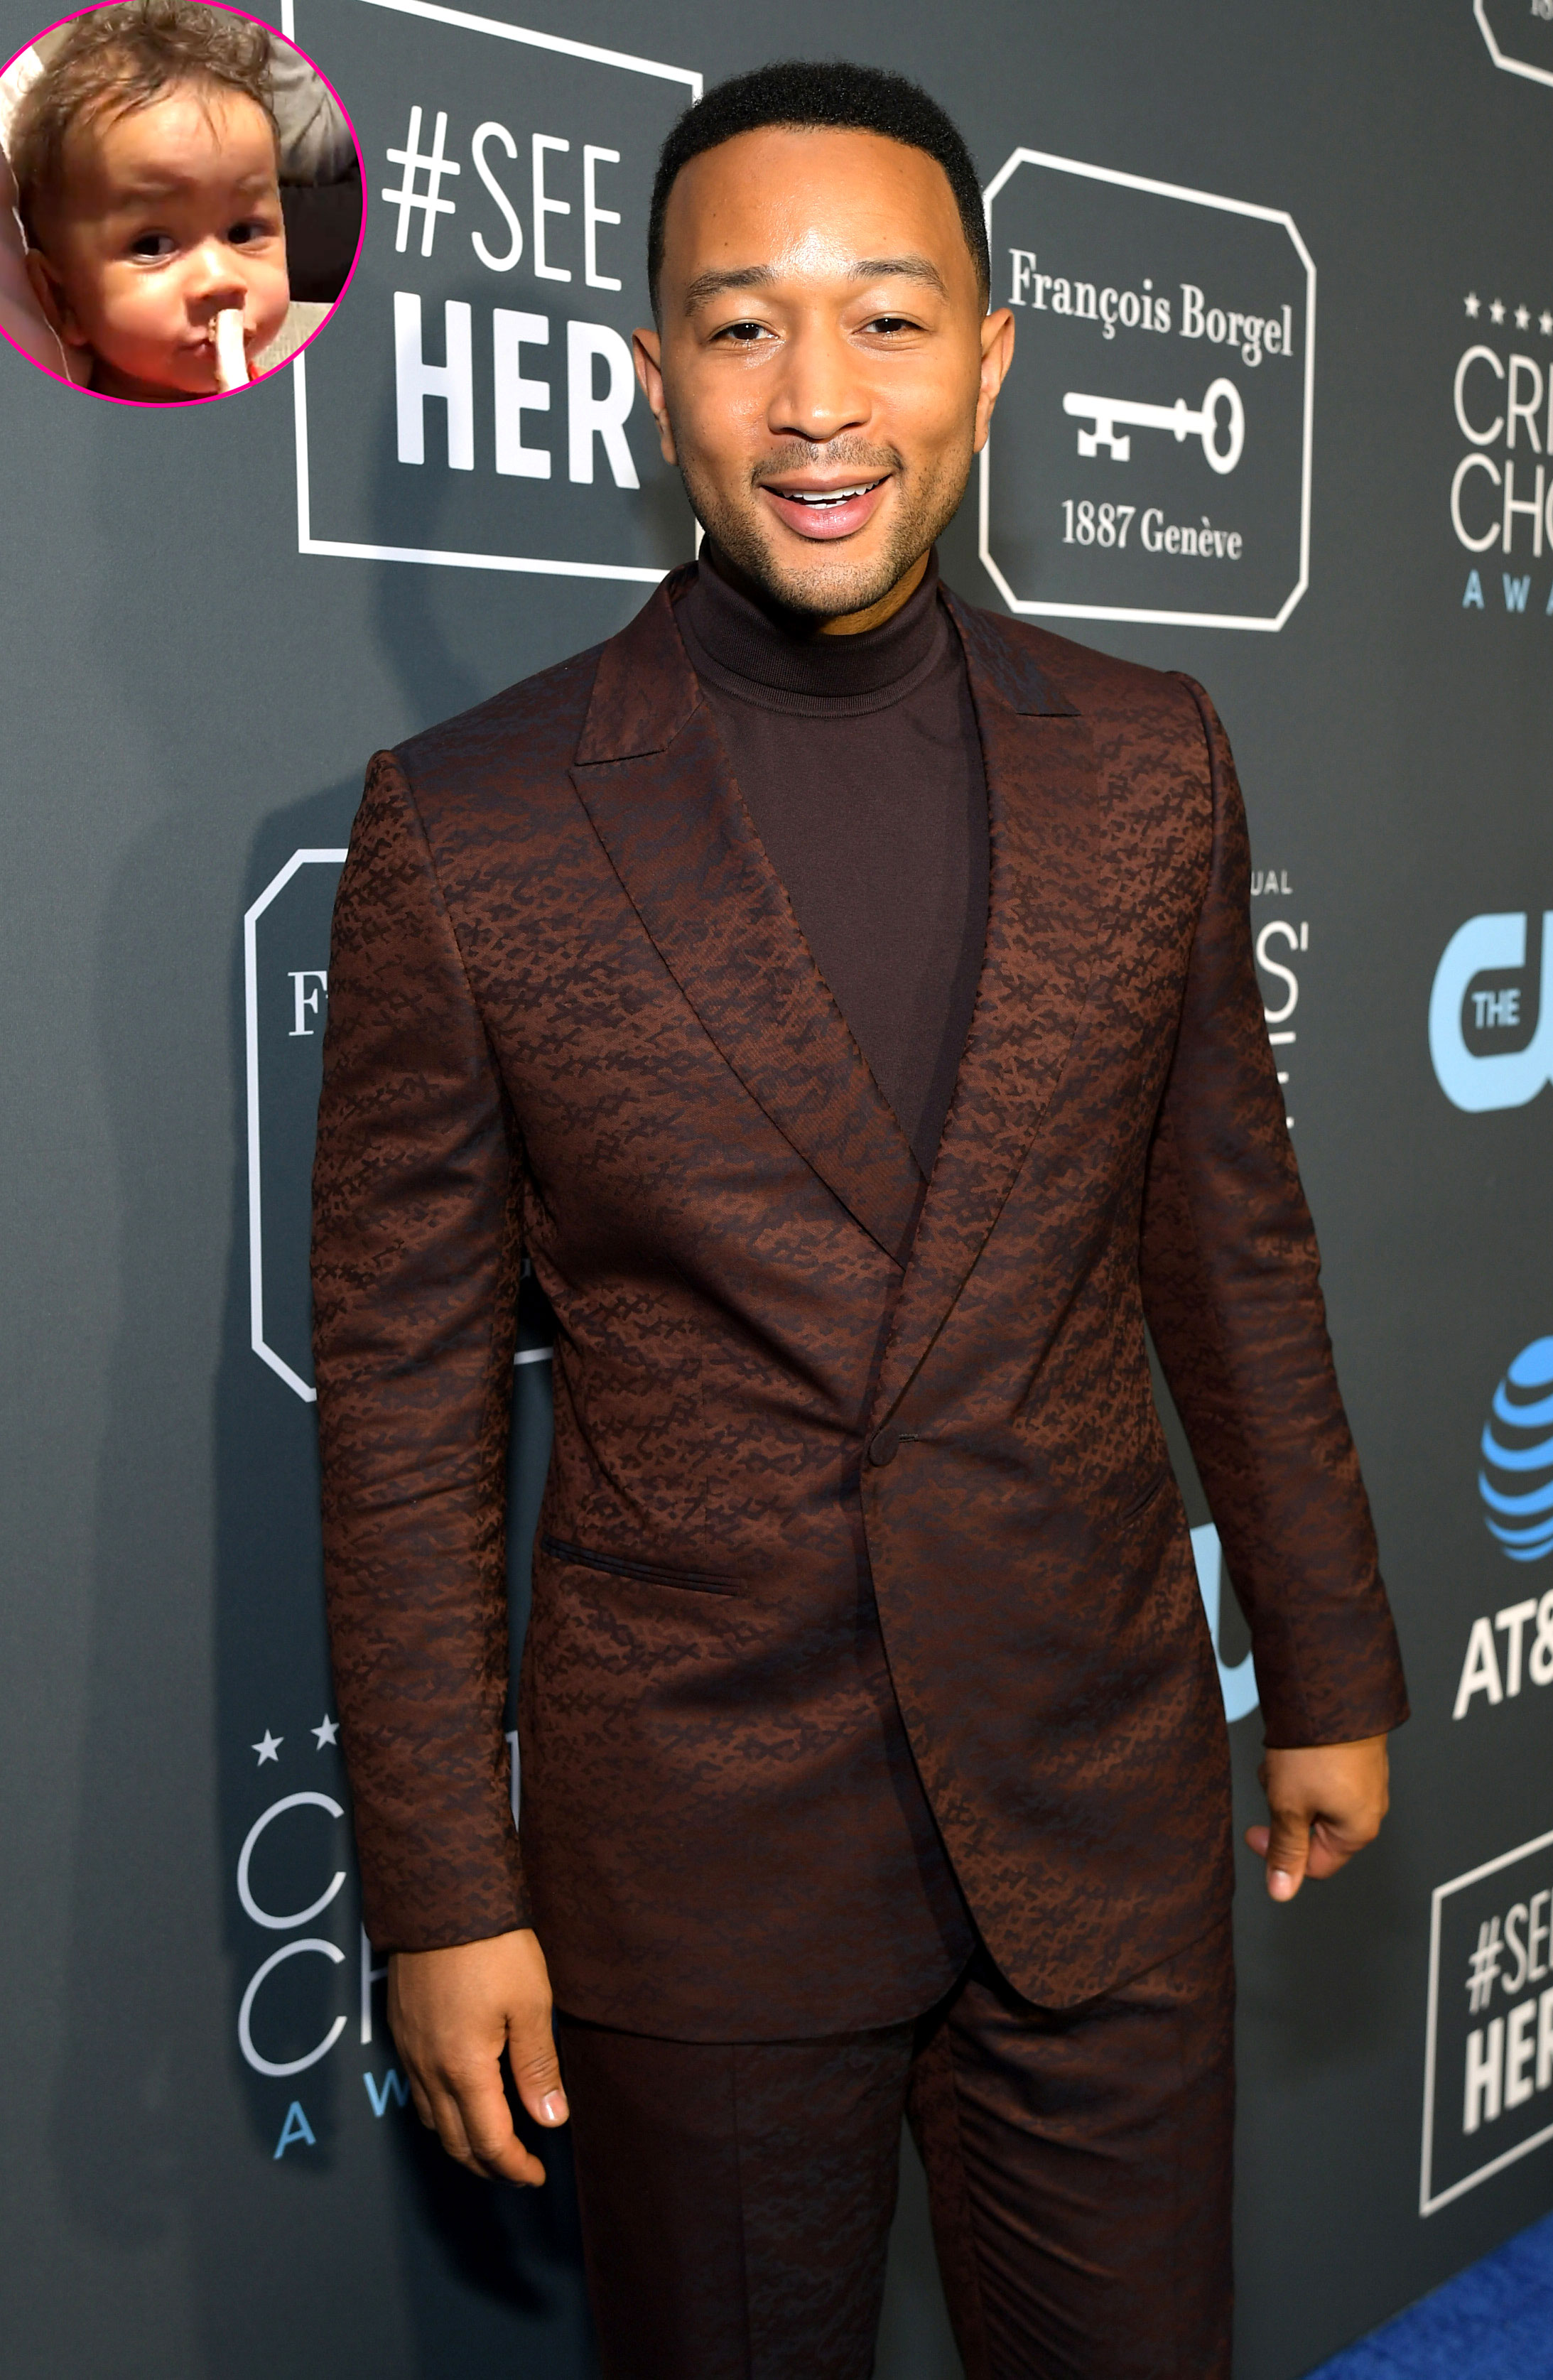 Twins! John Legend and Son Miles Adorably Eat Ribs Together - John Legend attends the 24th annual Critics' Choice Awards at Barker Hangar on January 13, 2019 in Santa Monica, California.